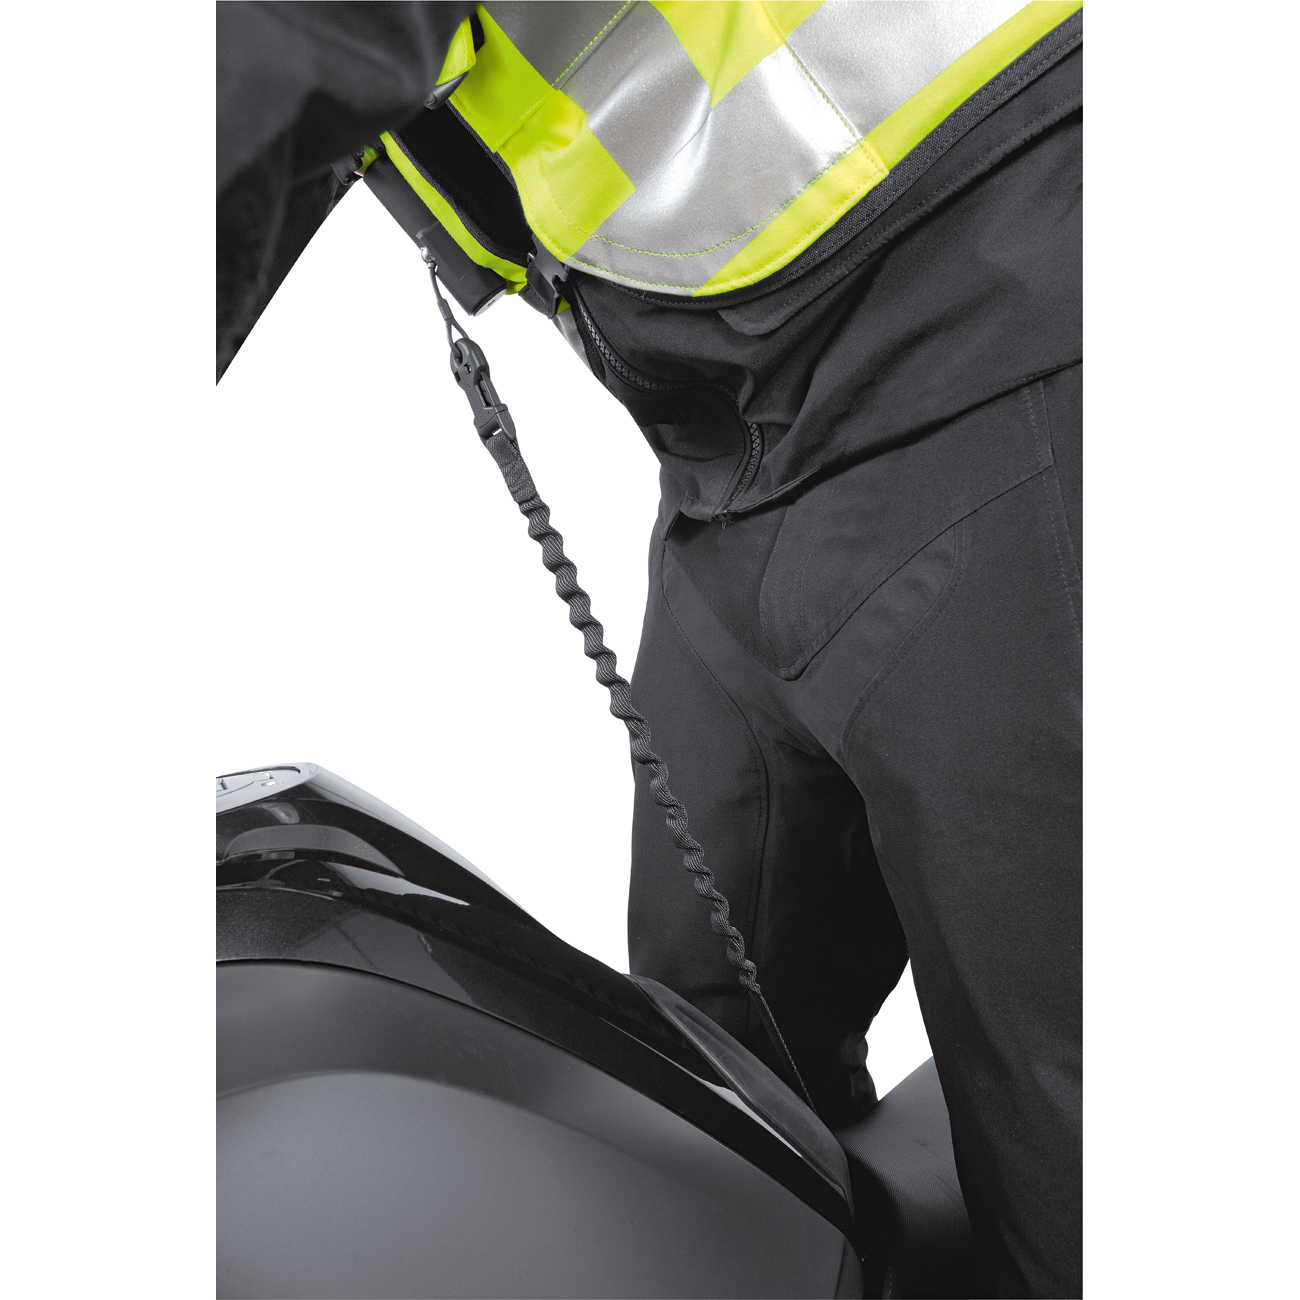 HELD - AIR VEST  (Art.6449) (Giallo Fluo)-3